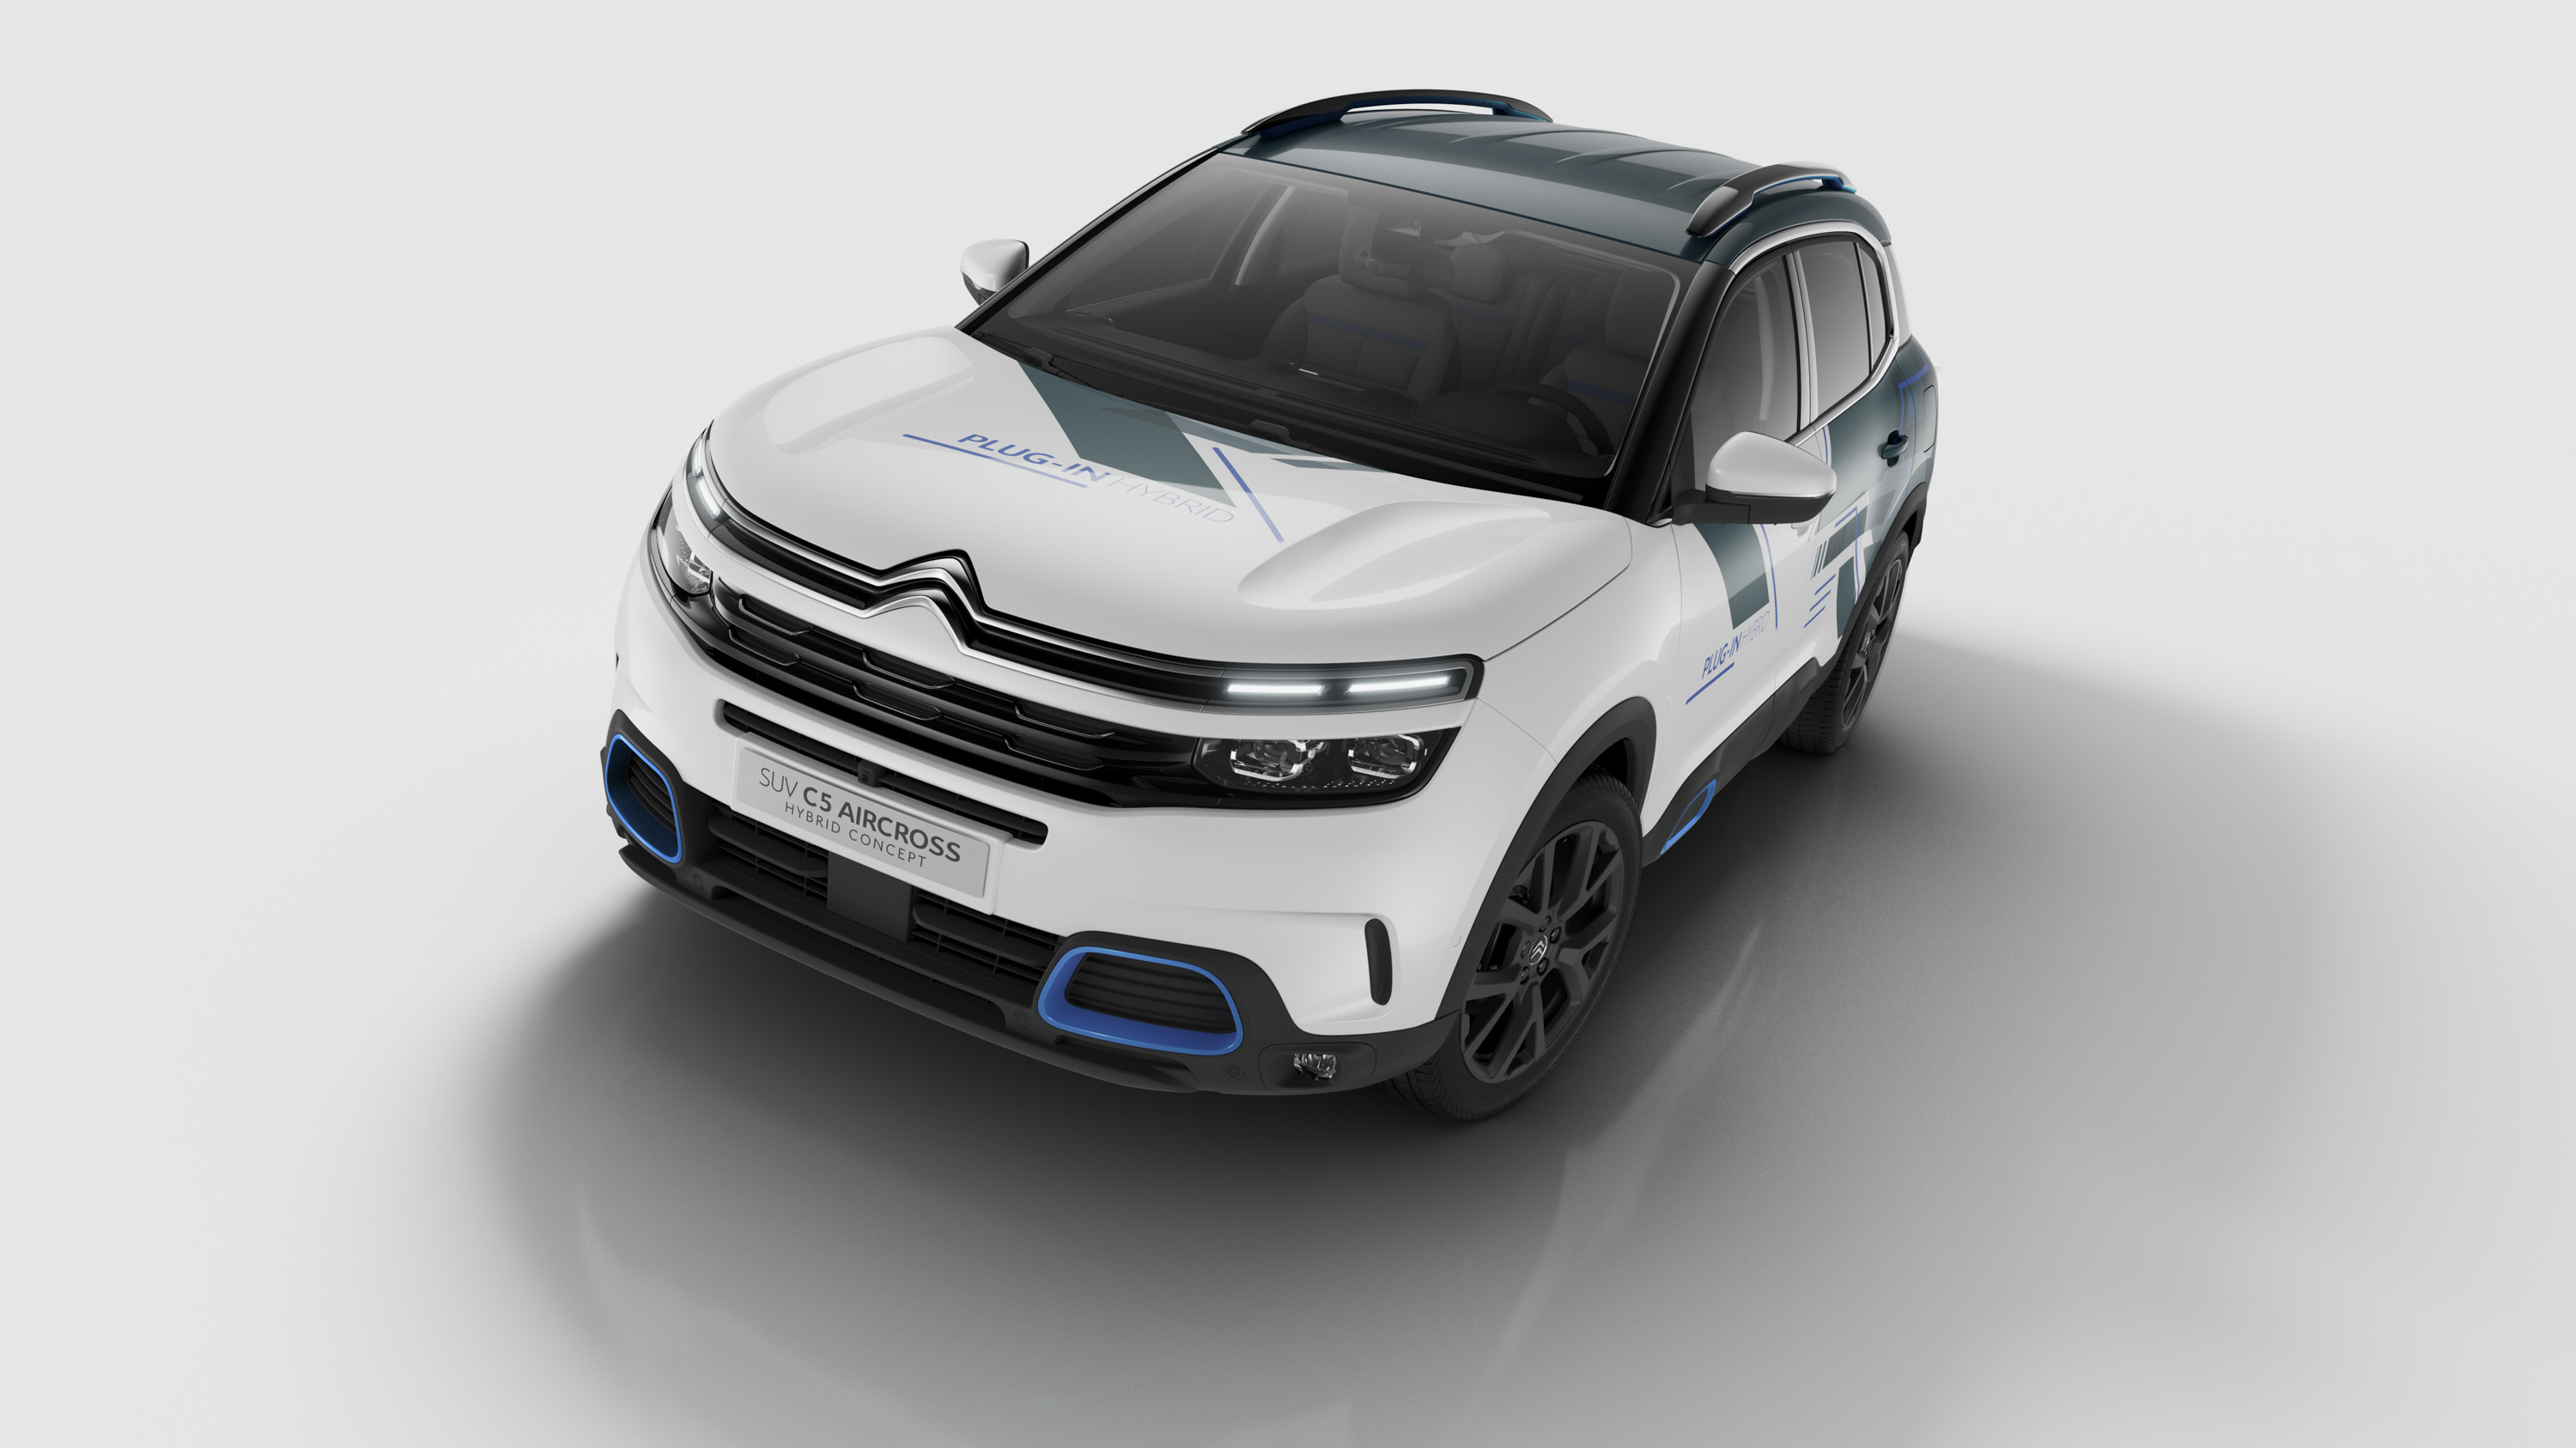 2019 citroen c5 aircross top speed. Black Bedroom Furniture Sets. Home Design Ideas